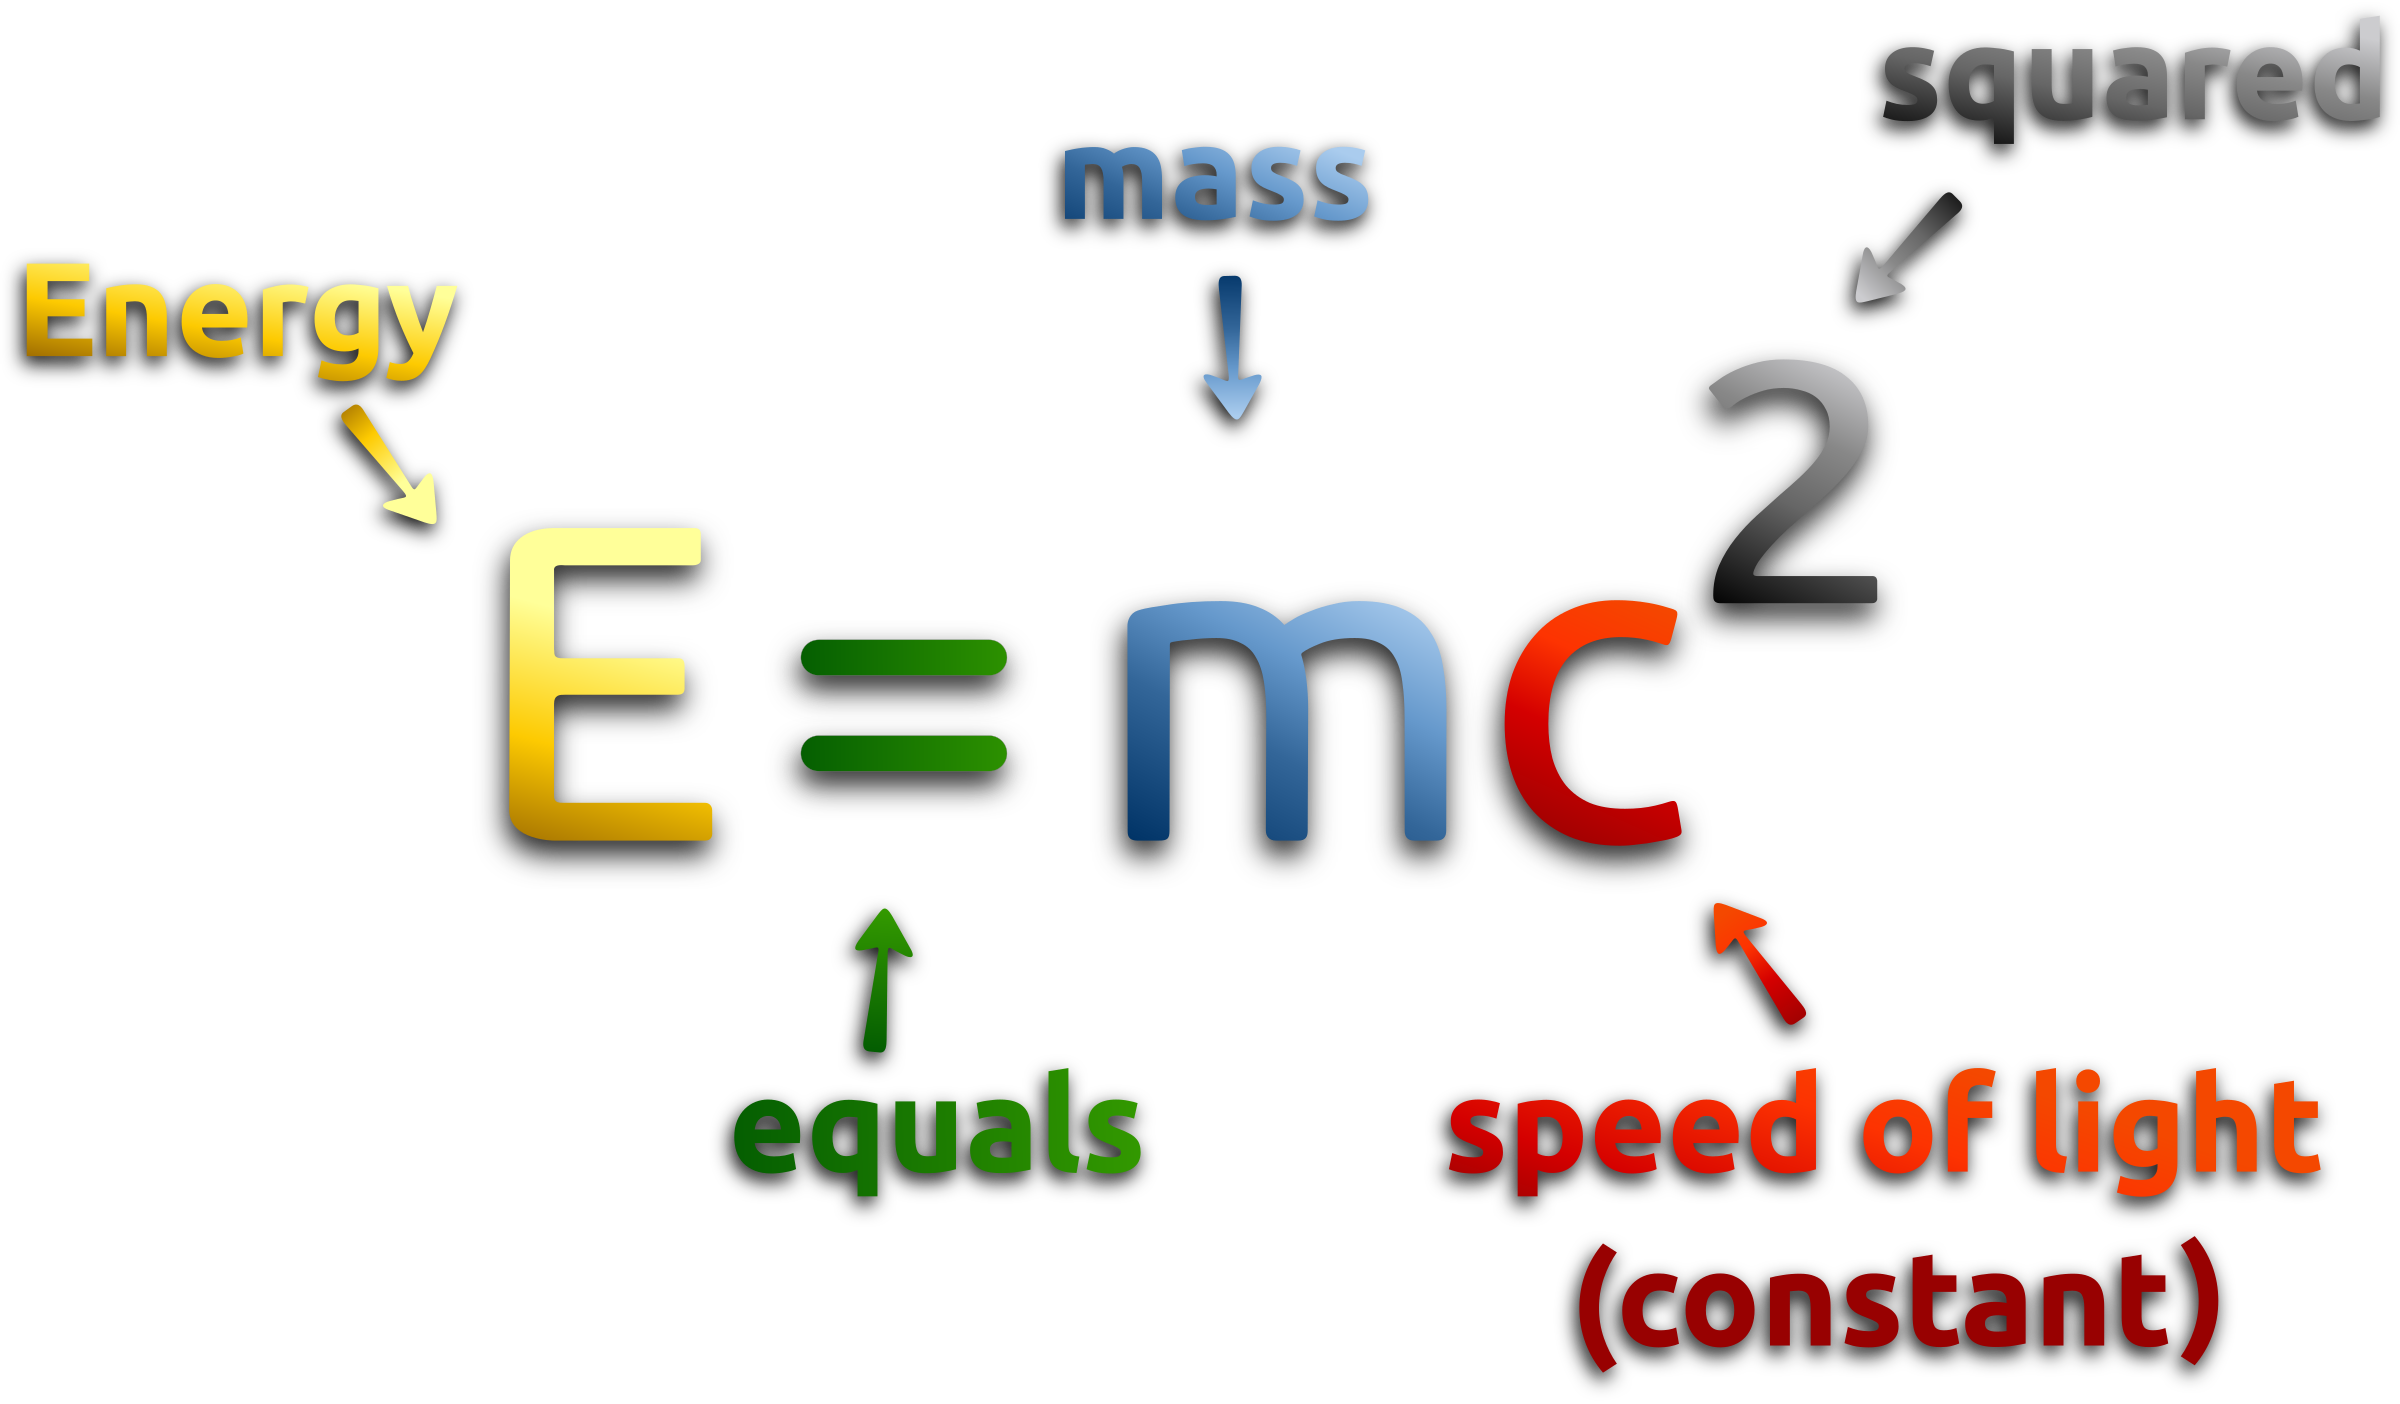 Mass - Energy Equivalence Formula 2 by Merlin2525